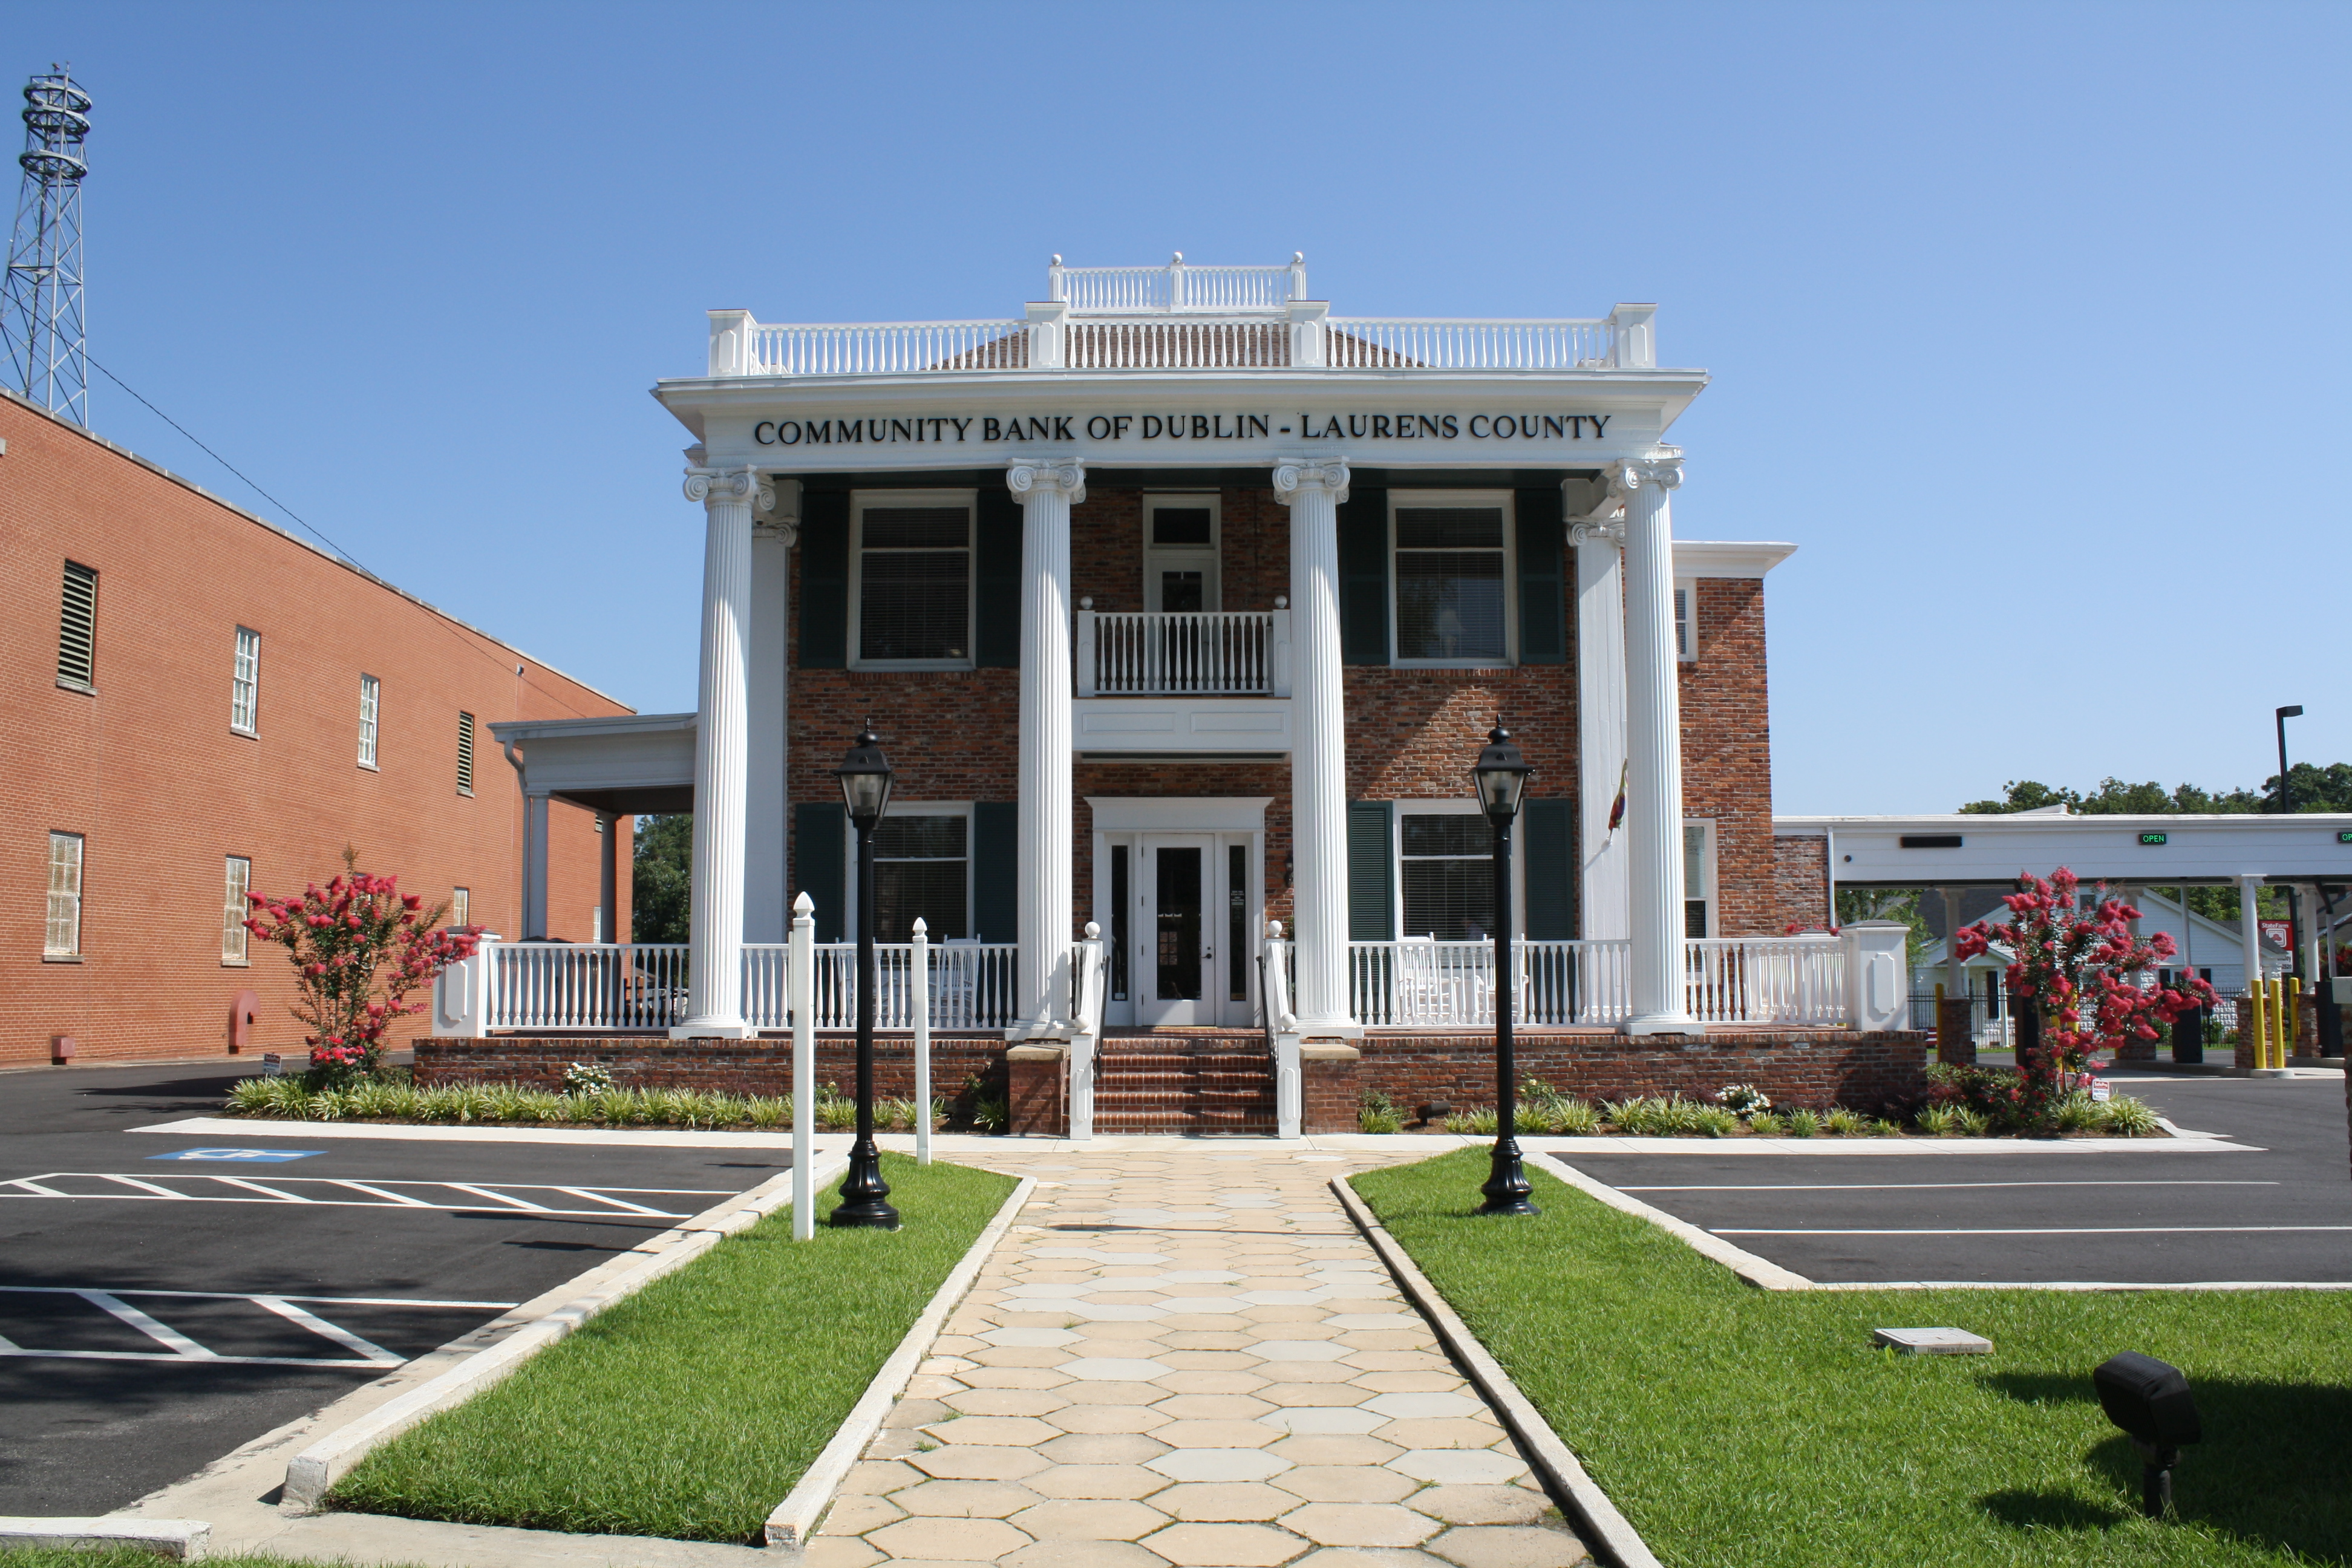 Community Bank of Dublin-Laurens County